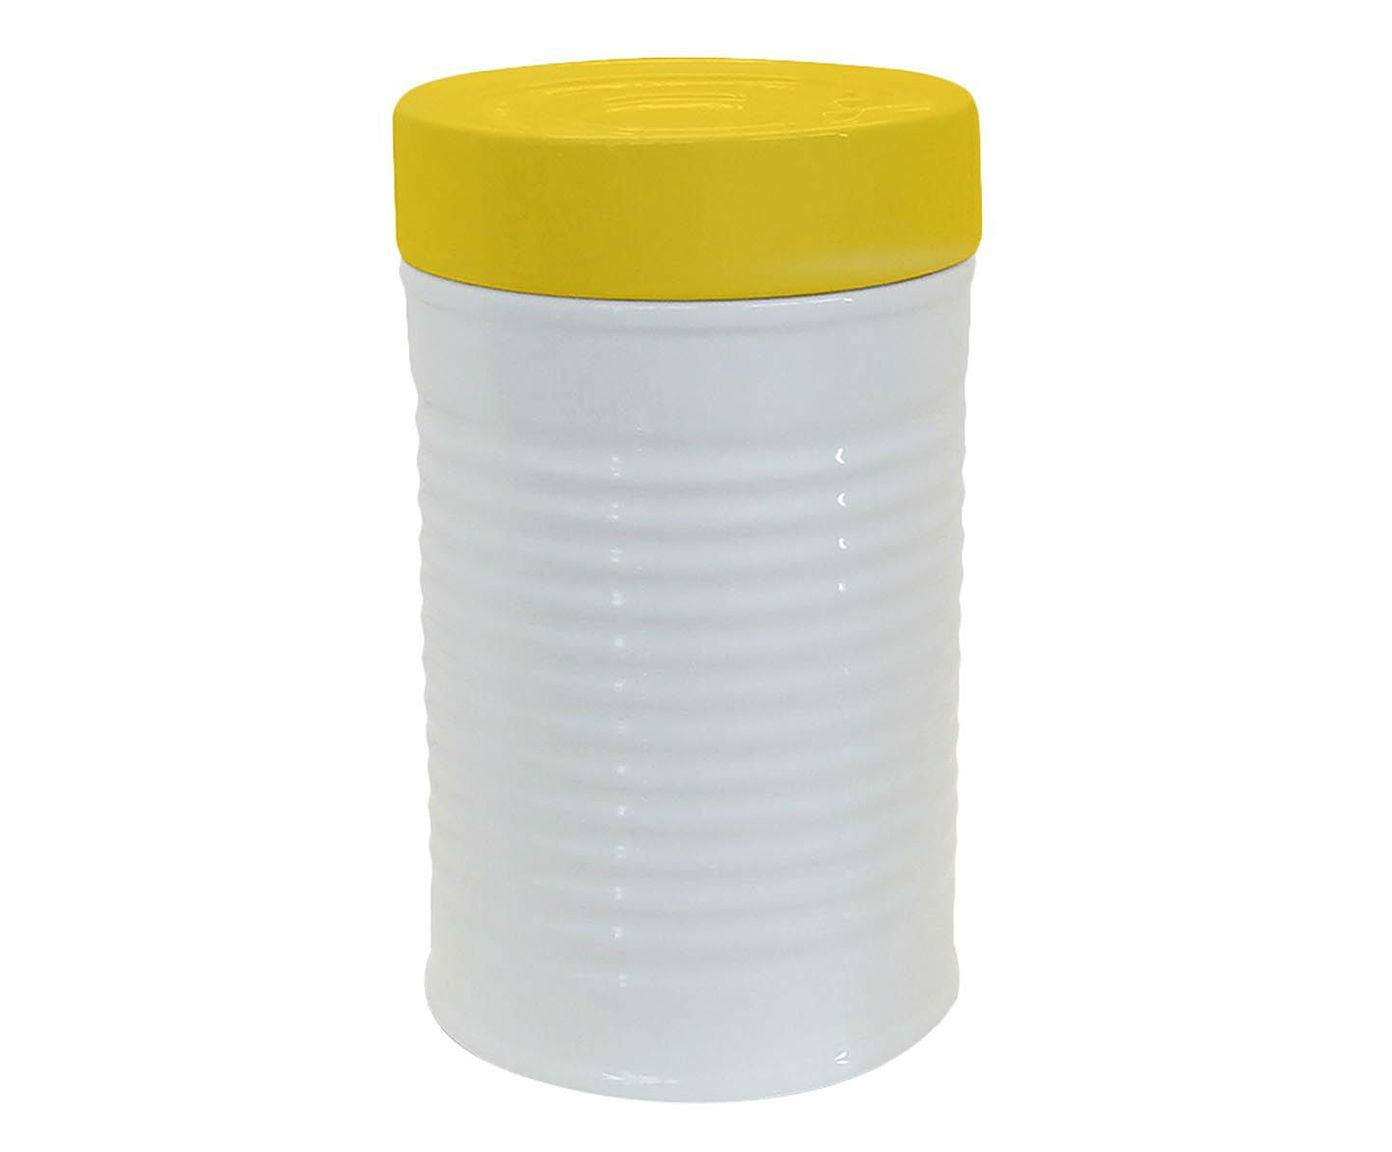 Pote com Tampa Can Branco - 1,3L   Westwing.com.br